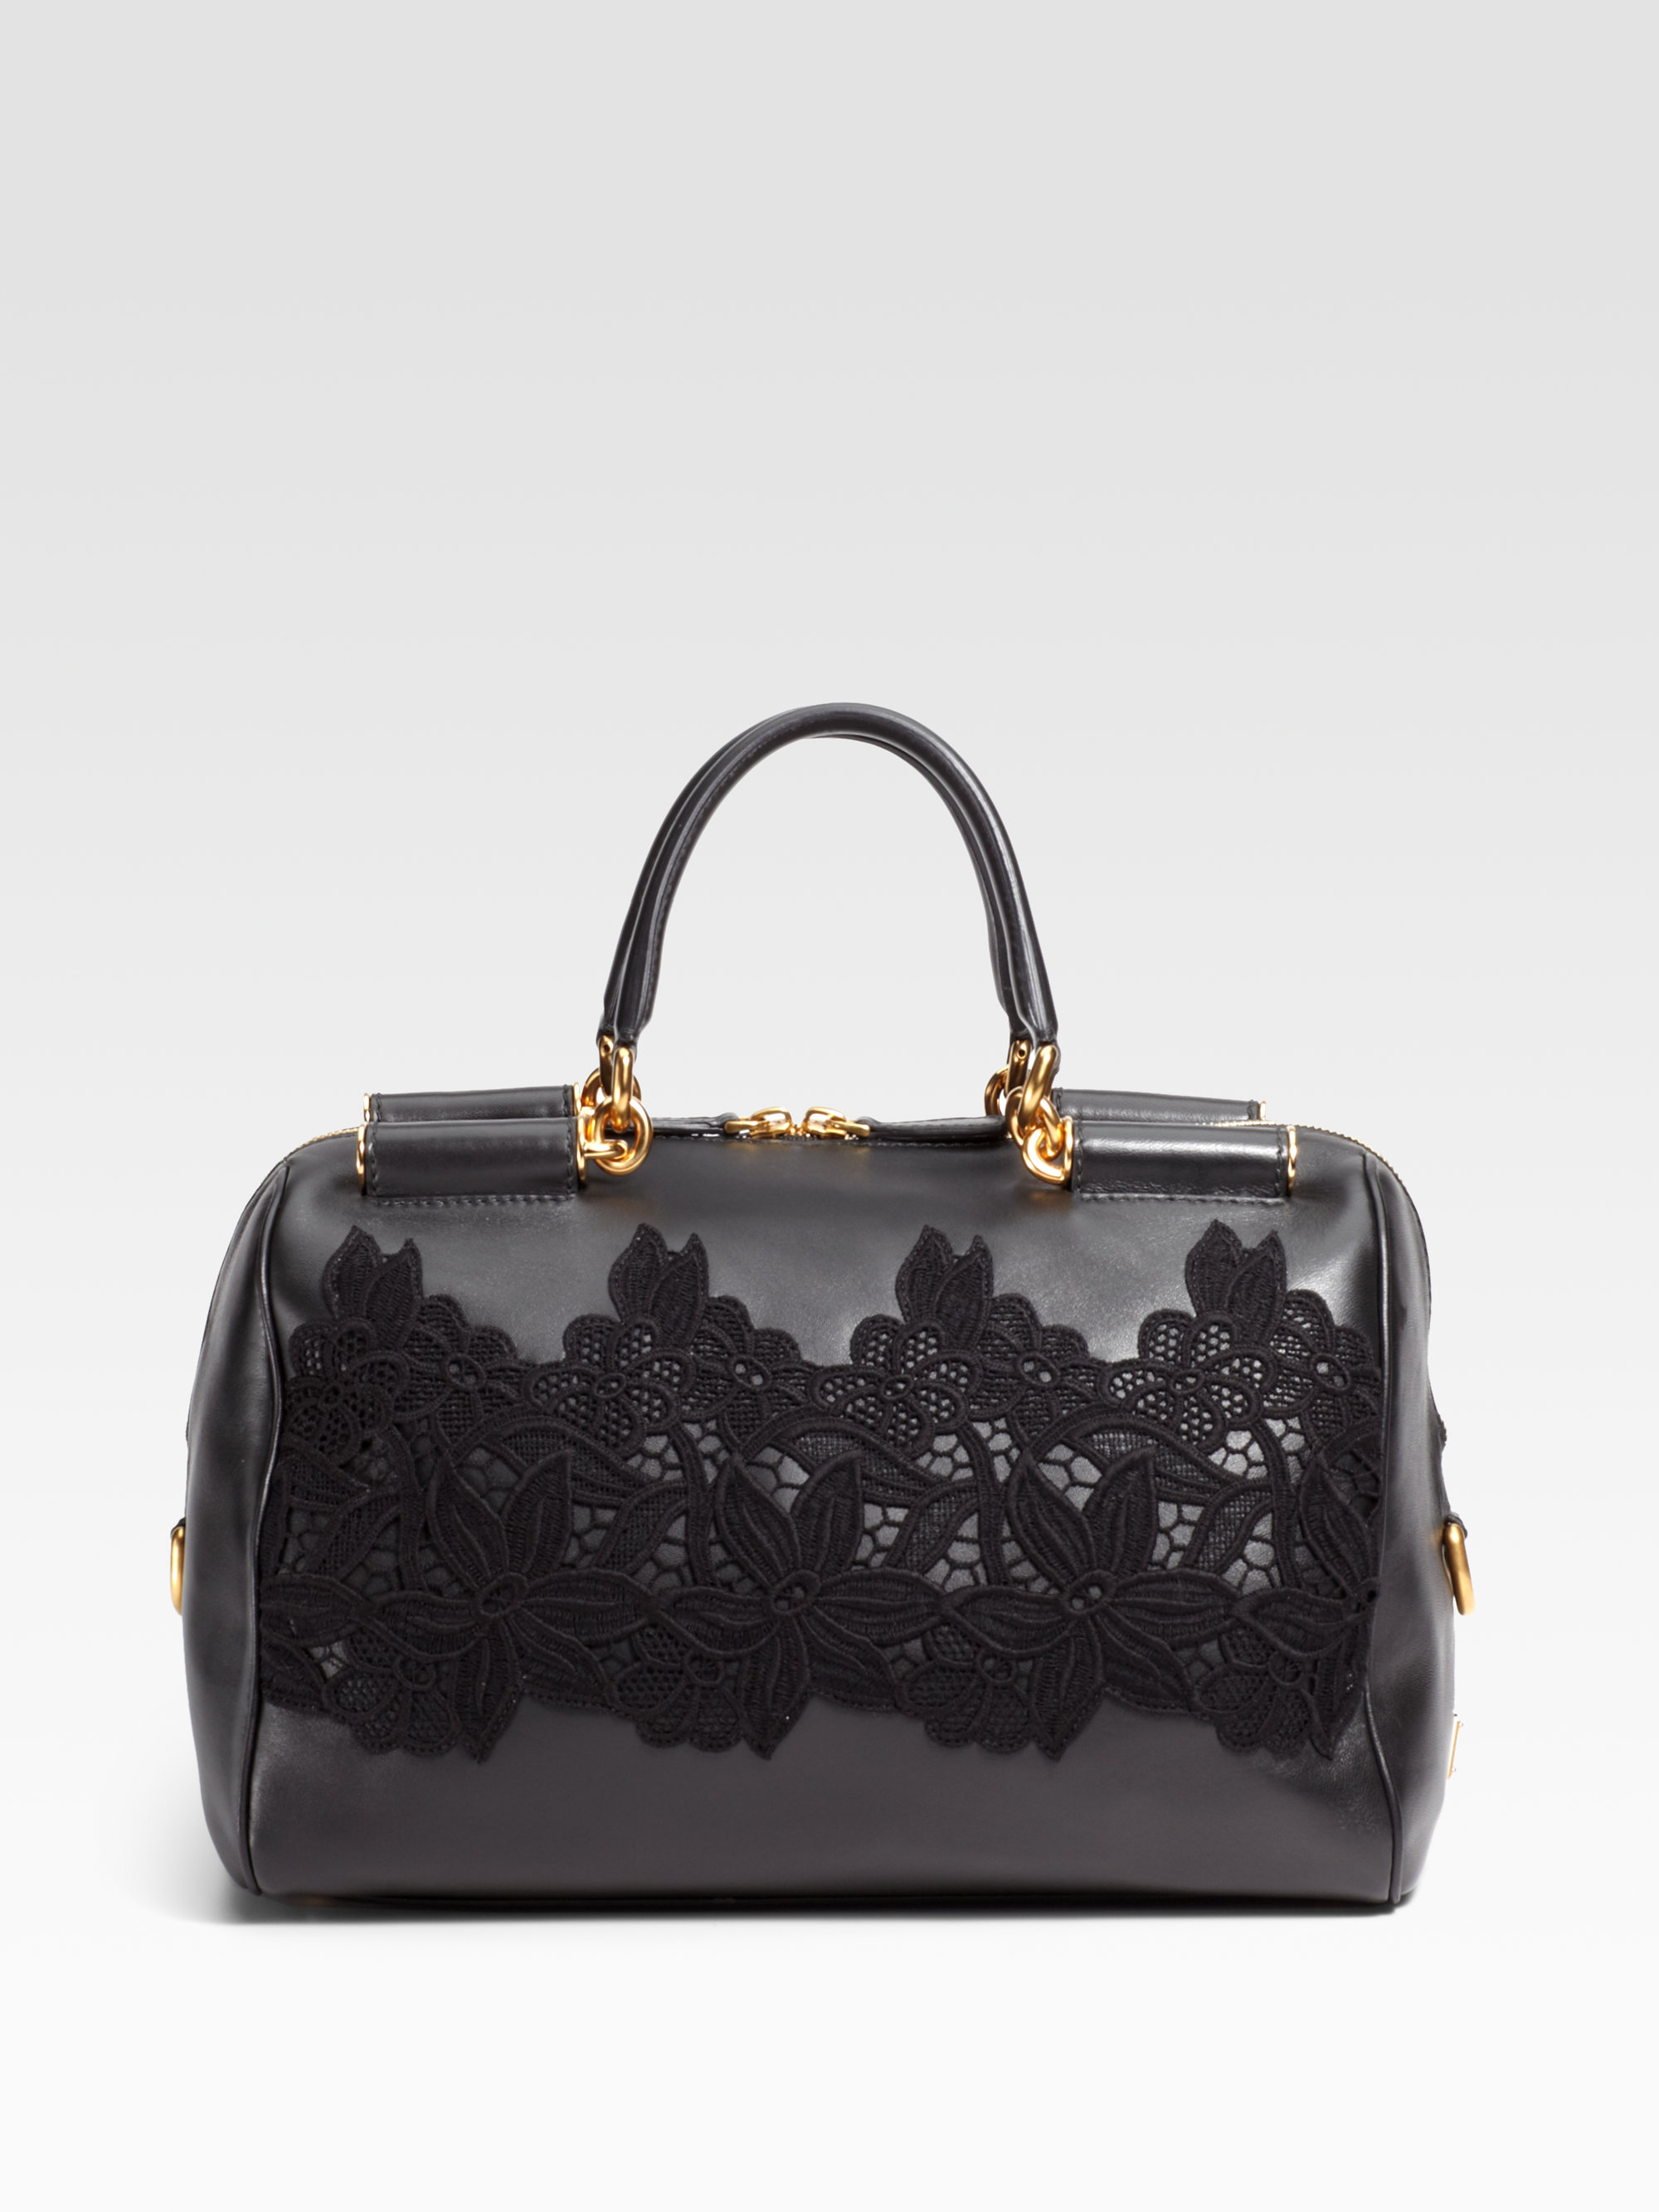 ... Lyst - Dolce Gabbana Miss Sicily Bowling Top Handle Bag in huge  discount fb8ae 291b9 6c7d5fad0ce1b